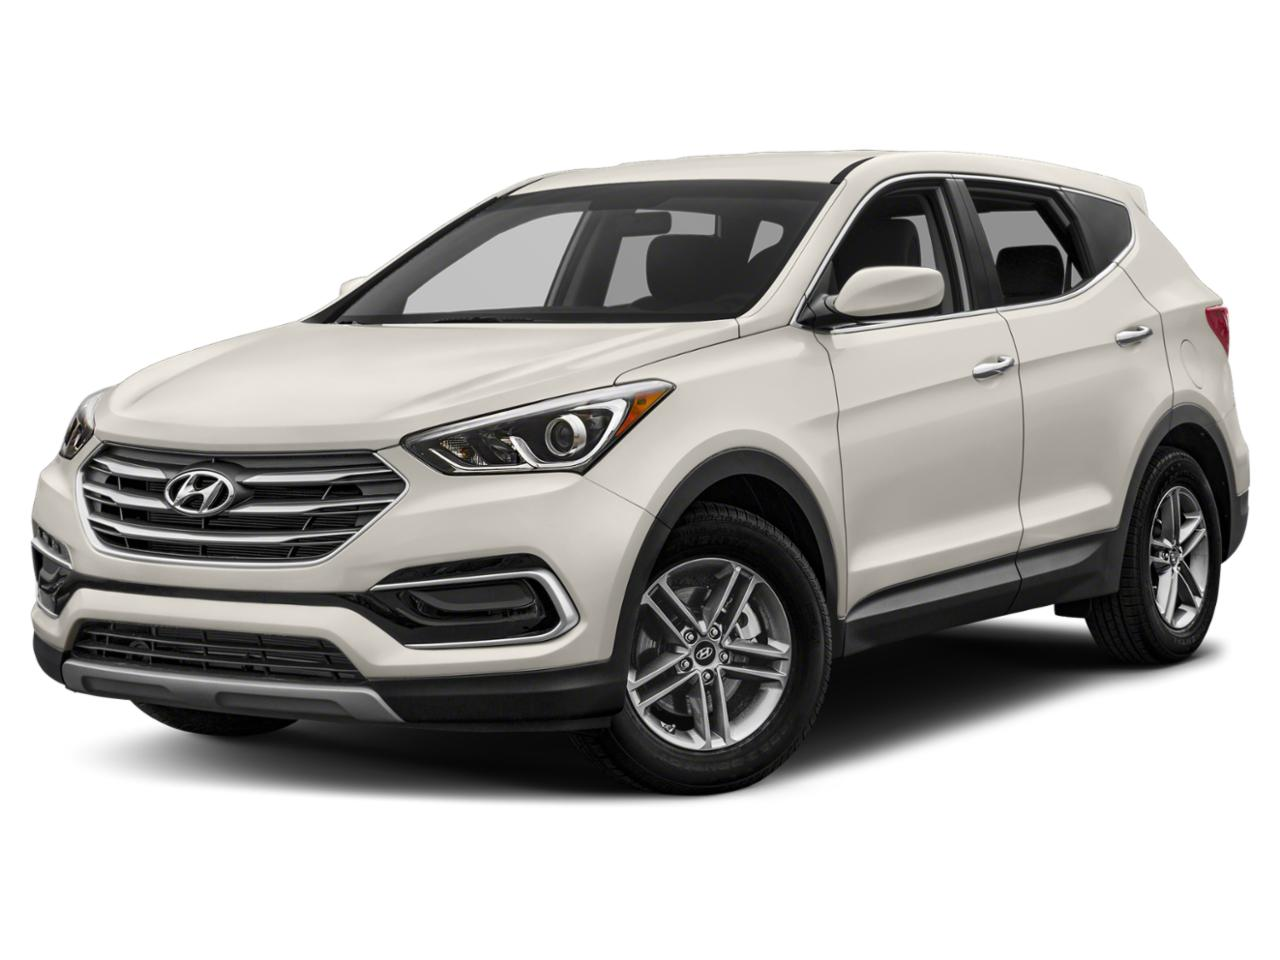 2018 Hyundai Santa Fe Sport Vehicle Photo in Mission, TX 78572